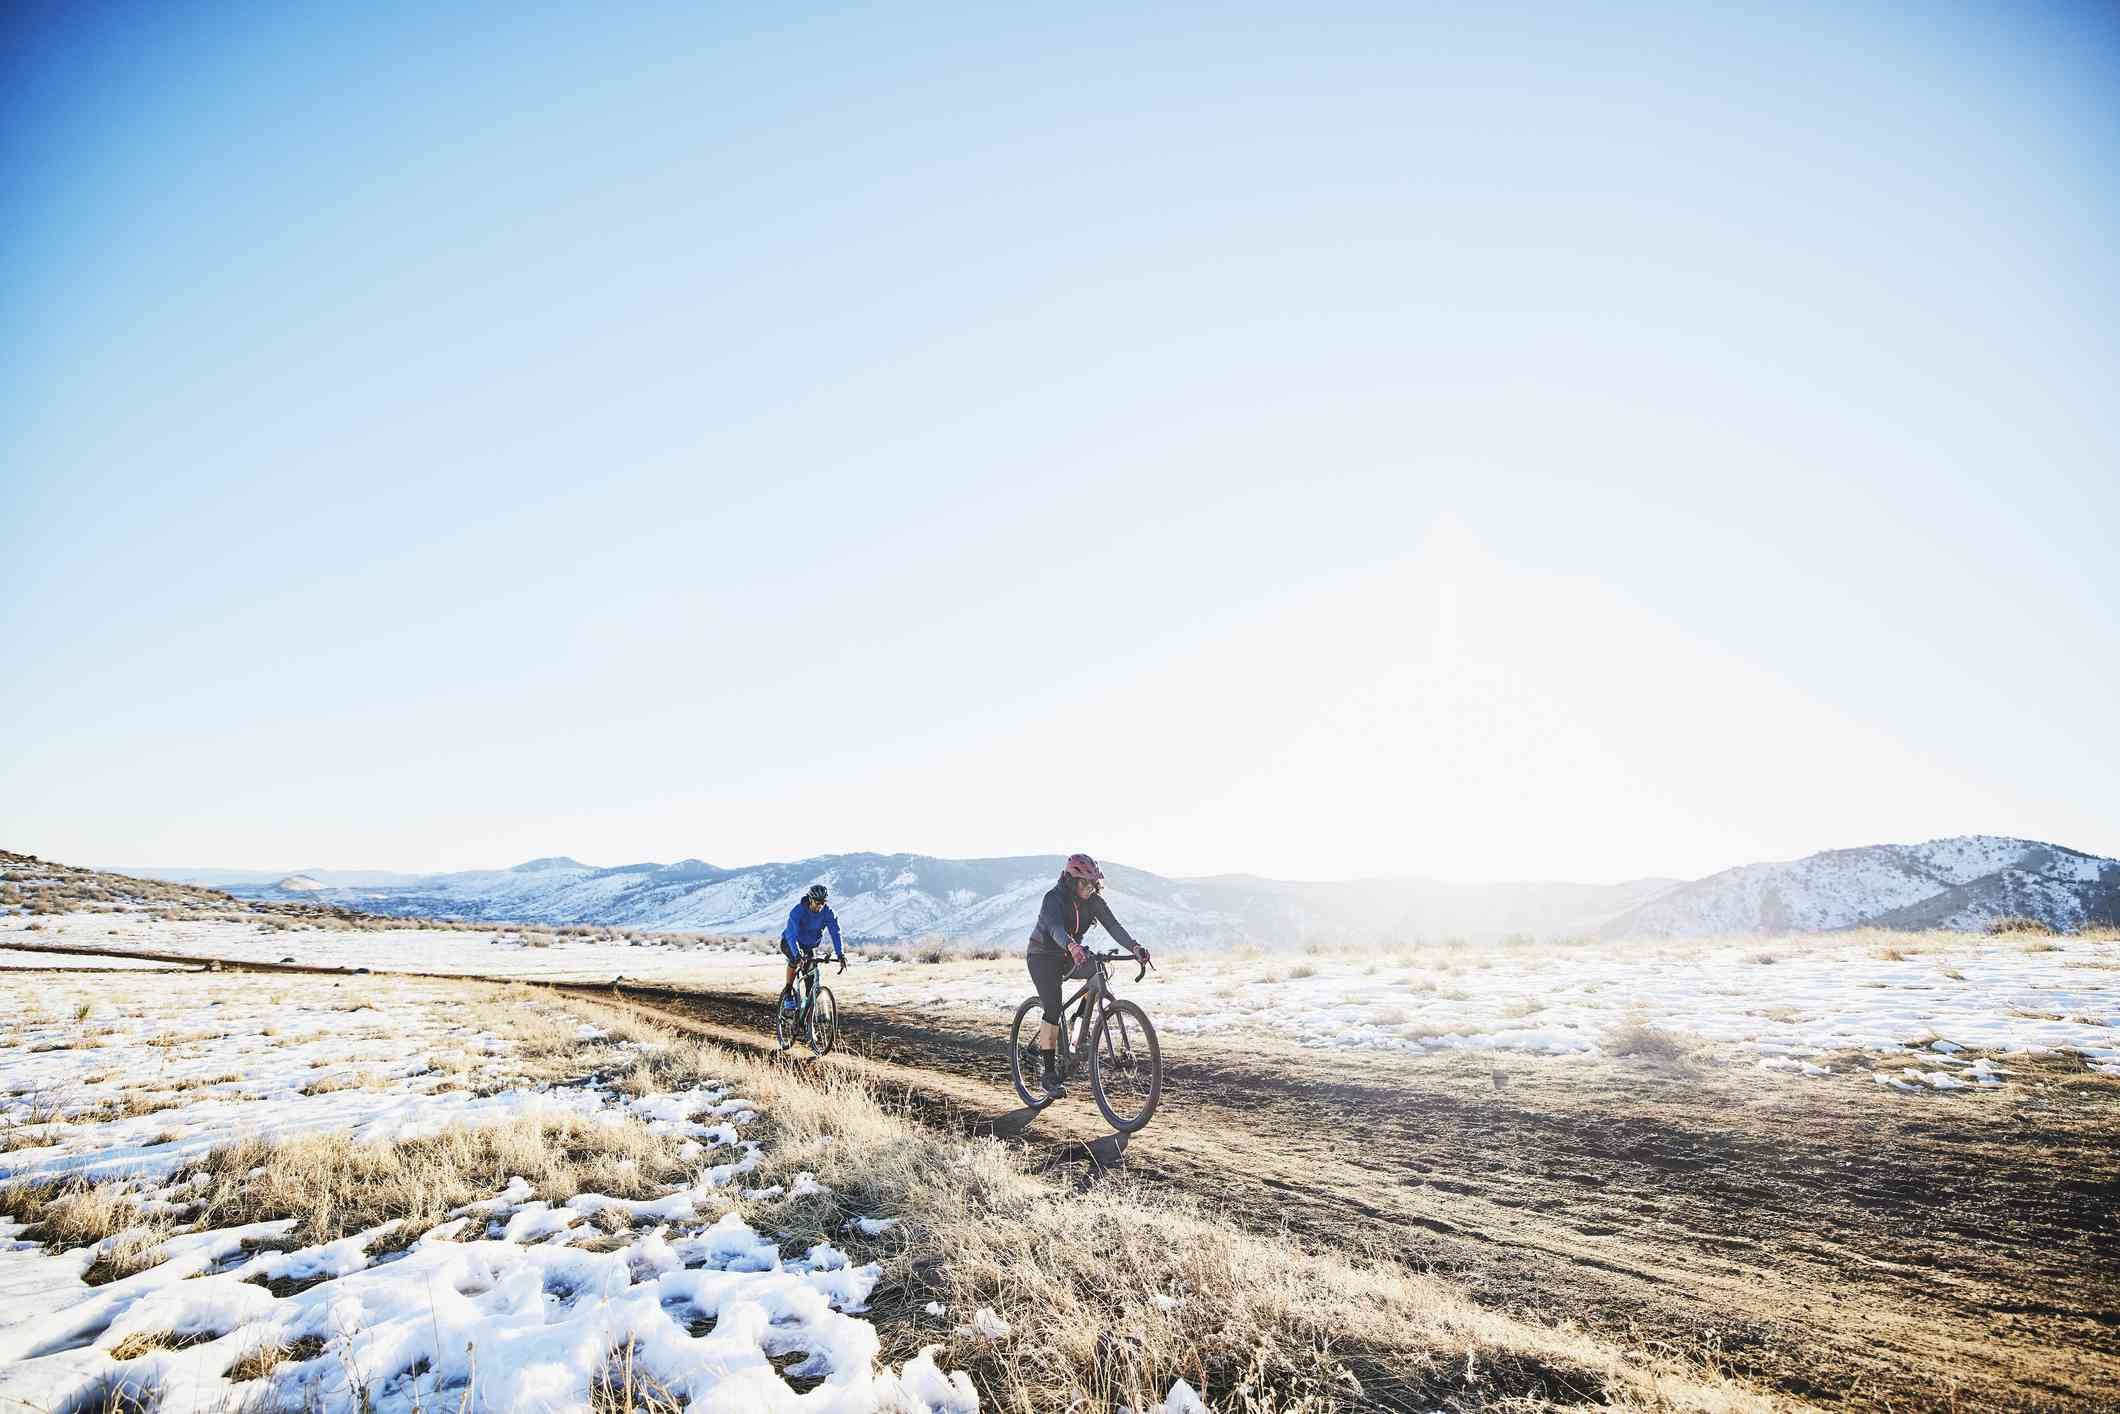 Friends riding gravel bikes up hill on dirt road on winter afternoon